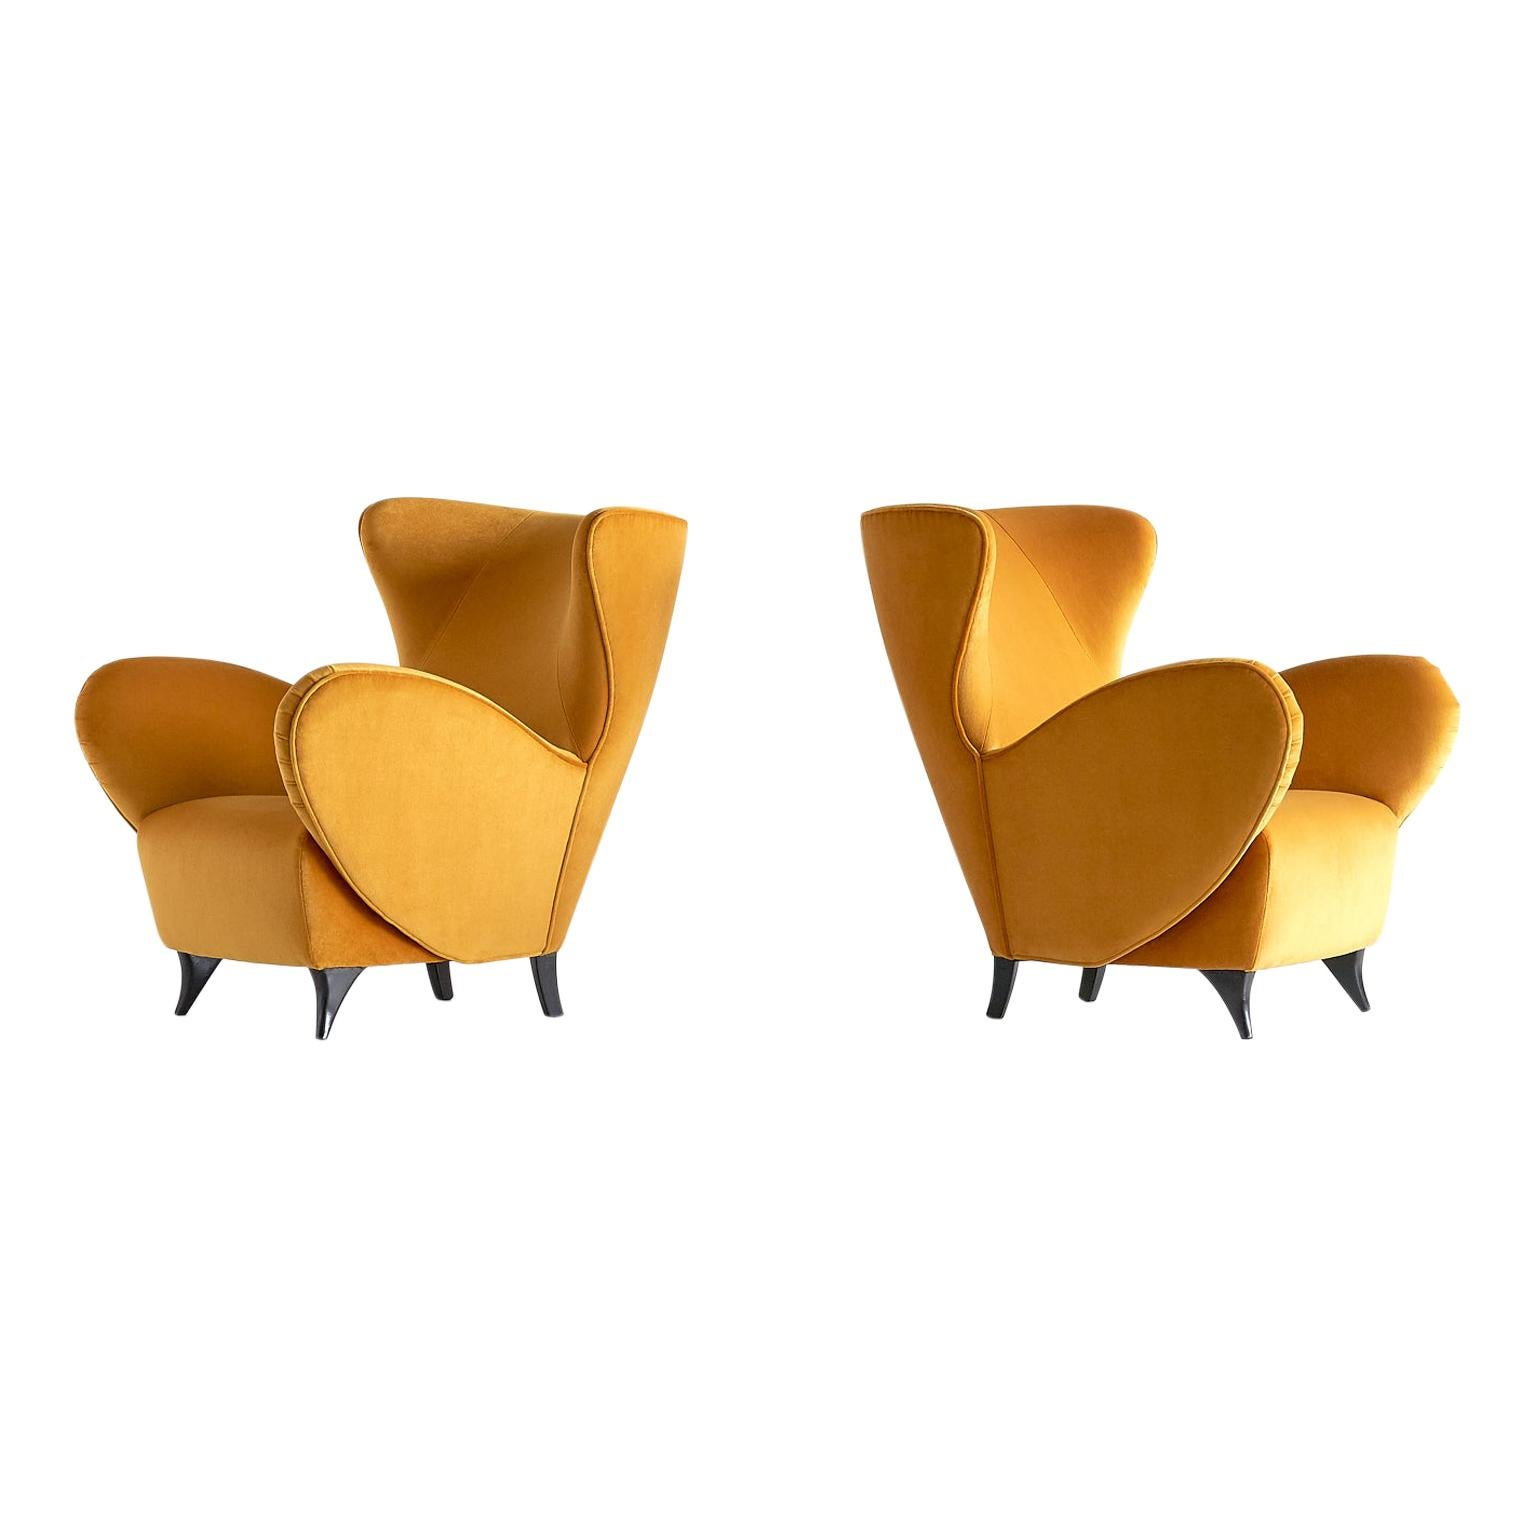 Sculptural Pair of Turin School Wingback Armchairs in Gold Velvet, Italy, 1940s